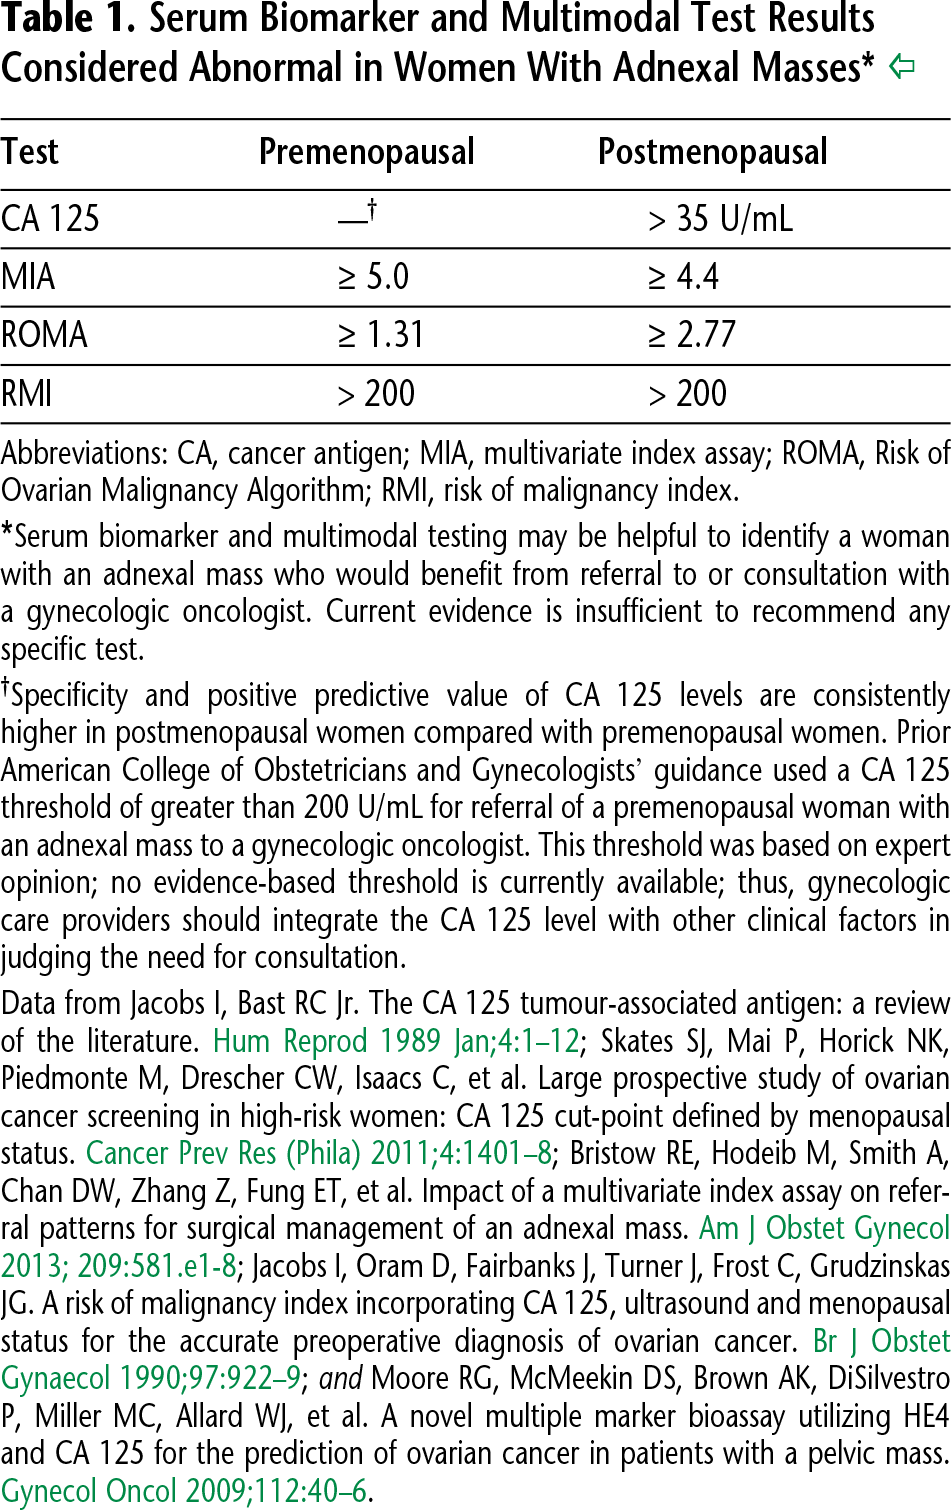 Table 1. Serum Biomarker and Multimodal Test Results Considered Abnormal in Women With Adnexal Masses*